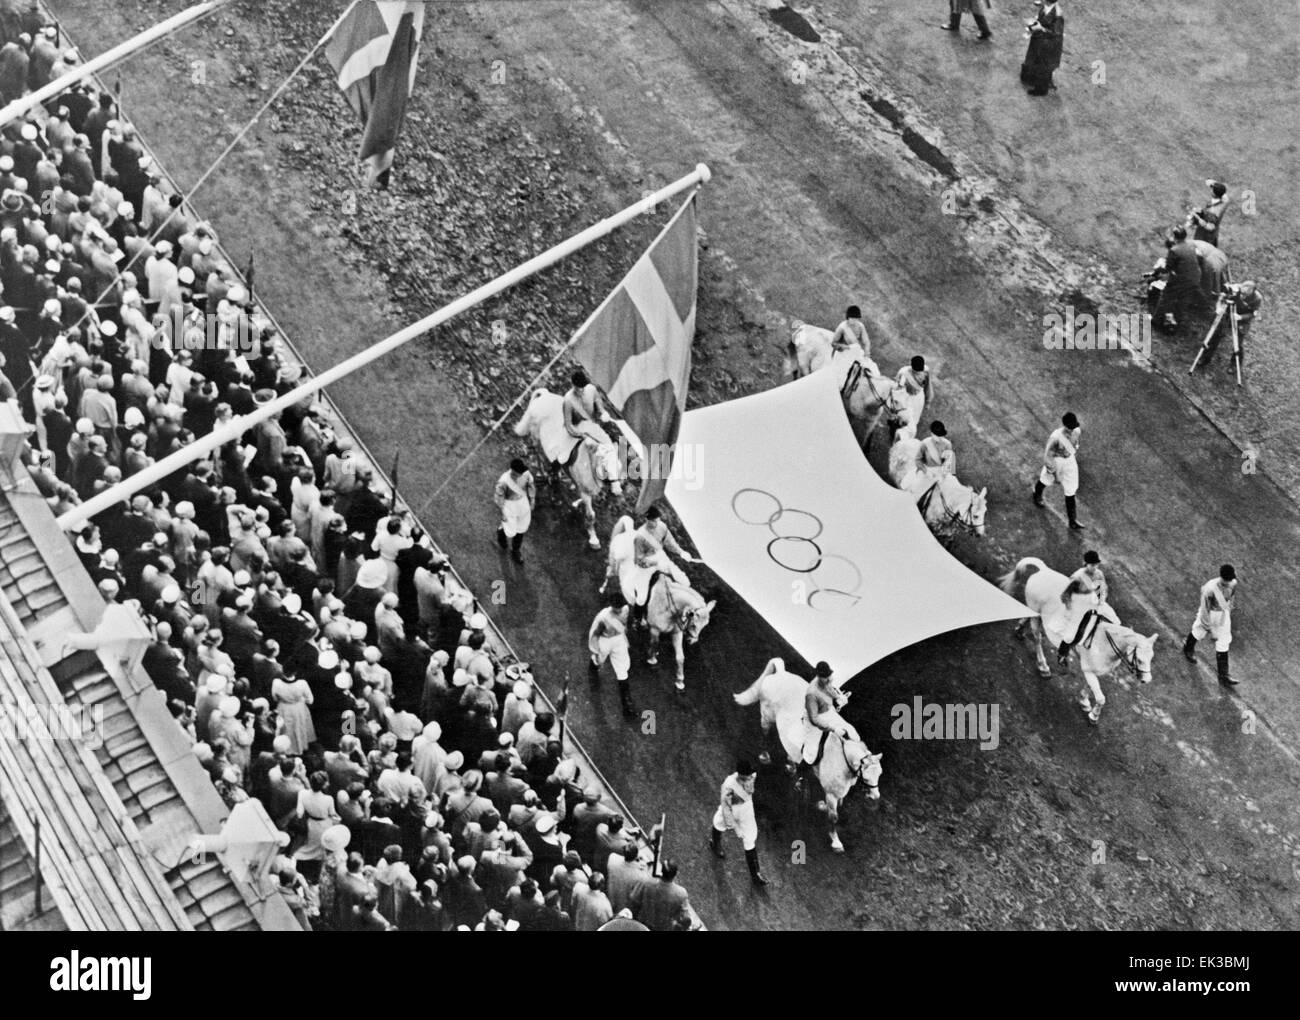 Stockholm. Sweden. The 16th Summer Olympics. Equestrian sport. Swedish sportsmen bearing the Olympic flag. - Stock Image